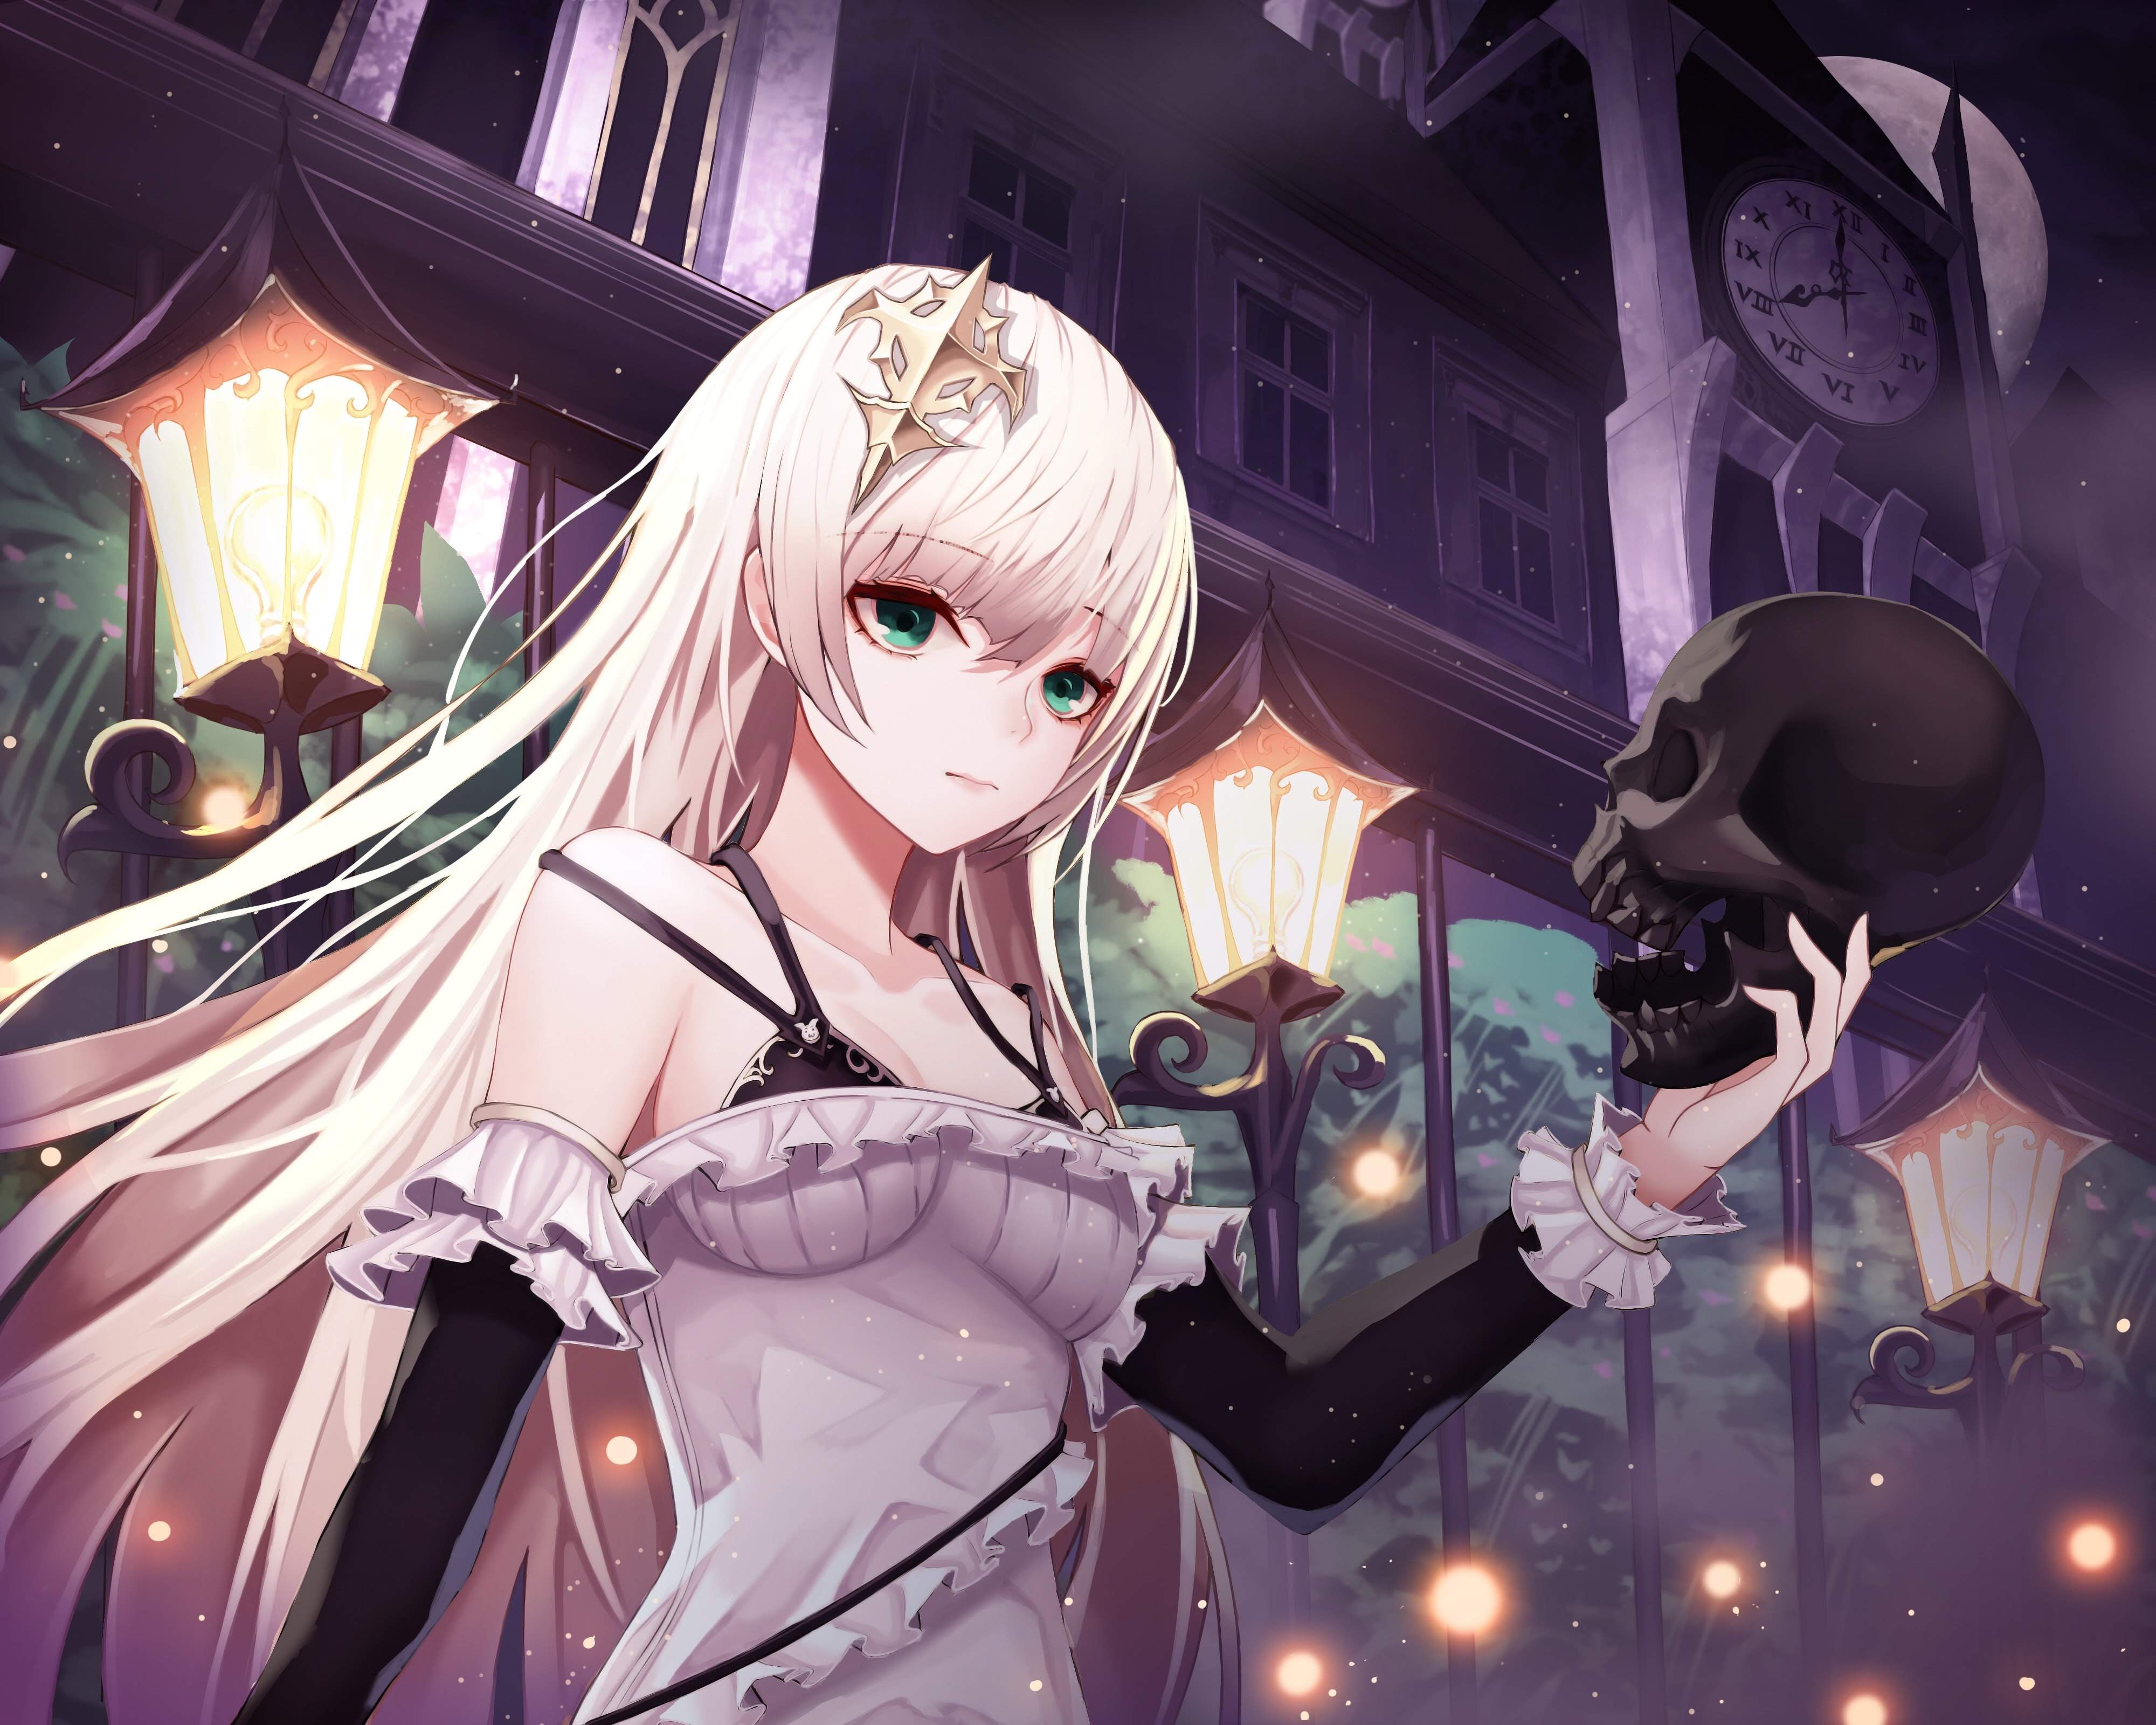 Pin On Anime Girl With White Hair